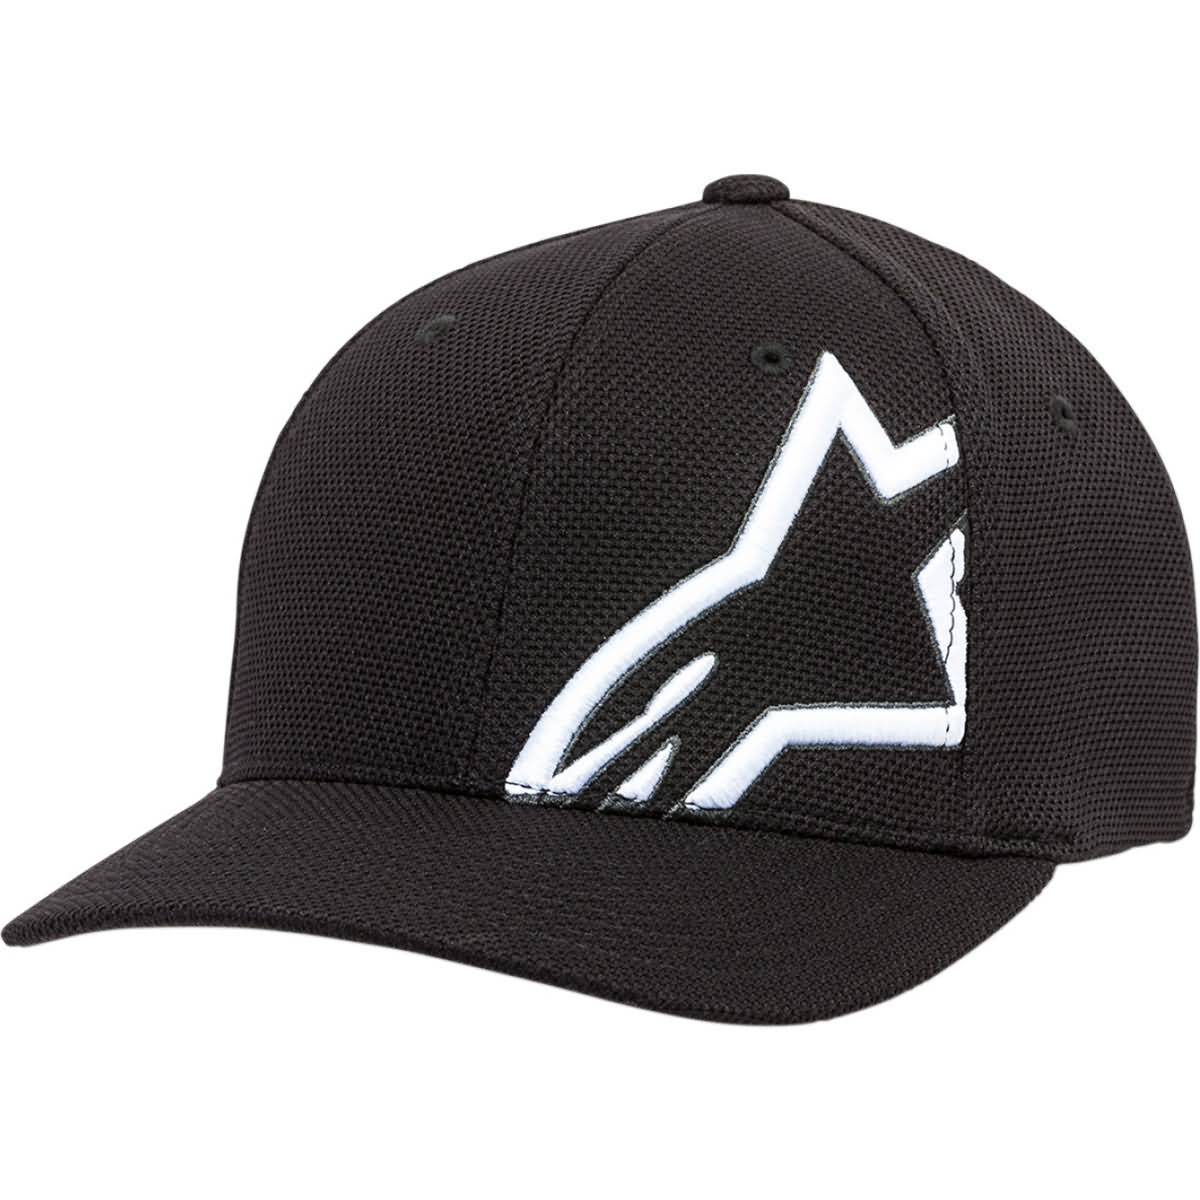 Alpinestars Corporate Stretch Mesh Men's Flexfit Hats-2501